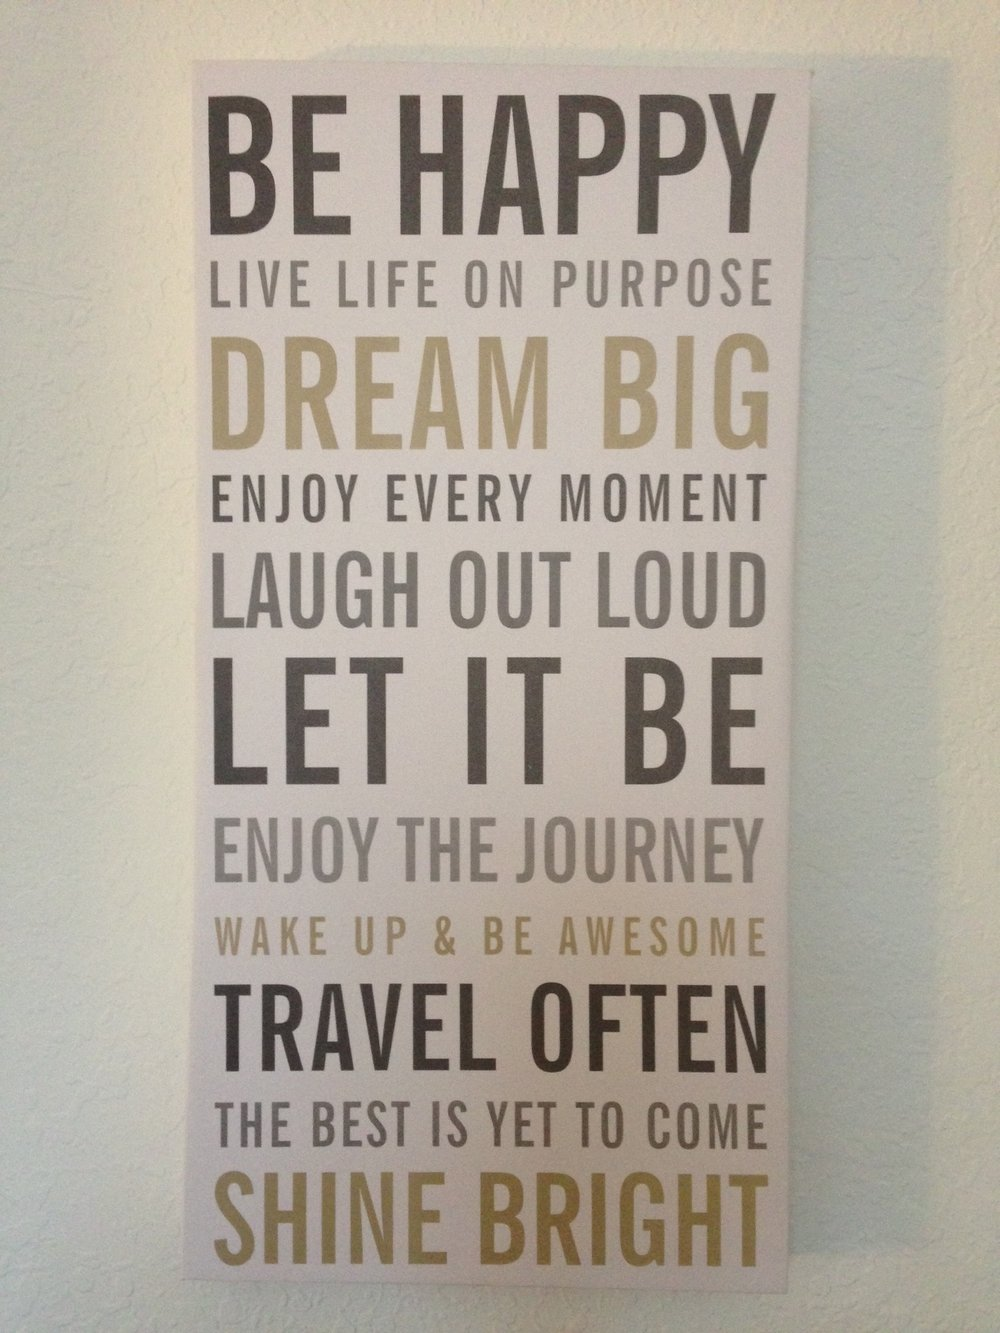 I have this hanging over my computer as a constant reminder of my journey